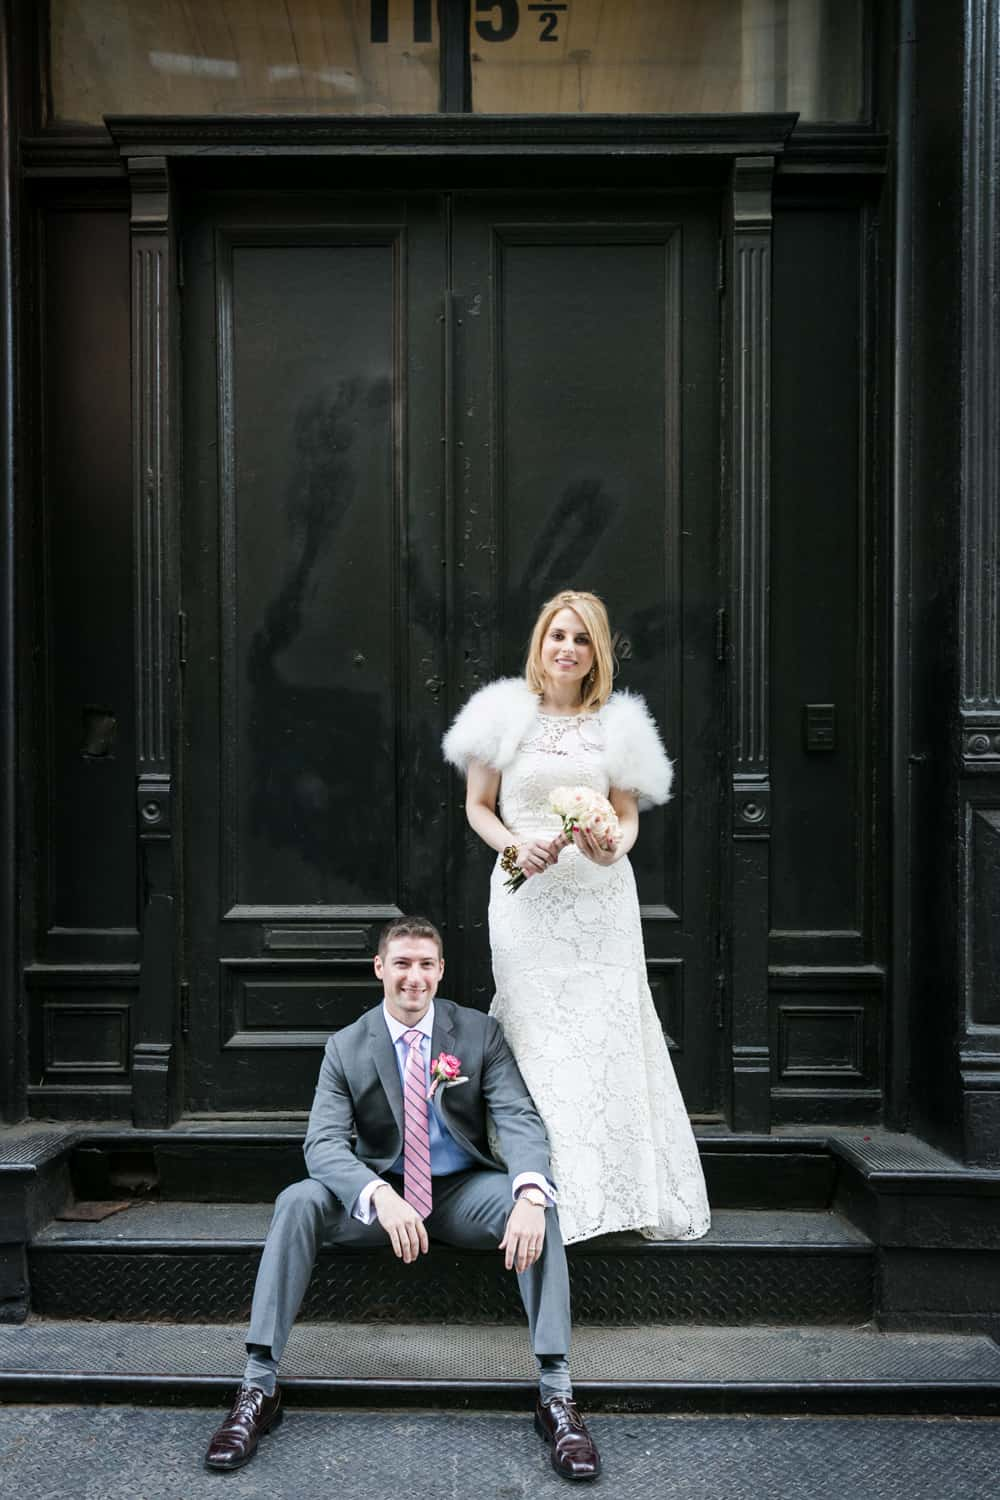 Bride and groom posed on stoop in Soho